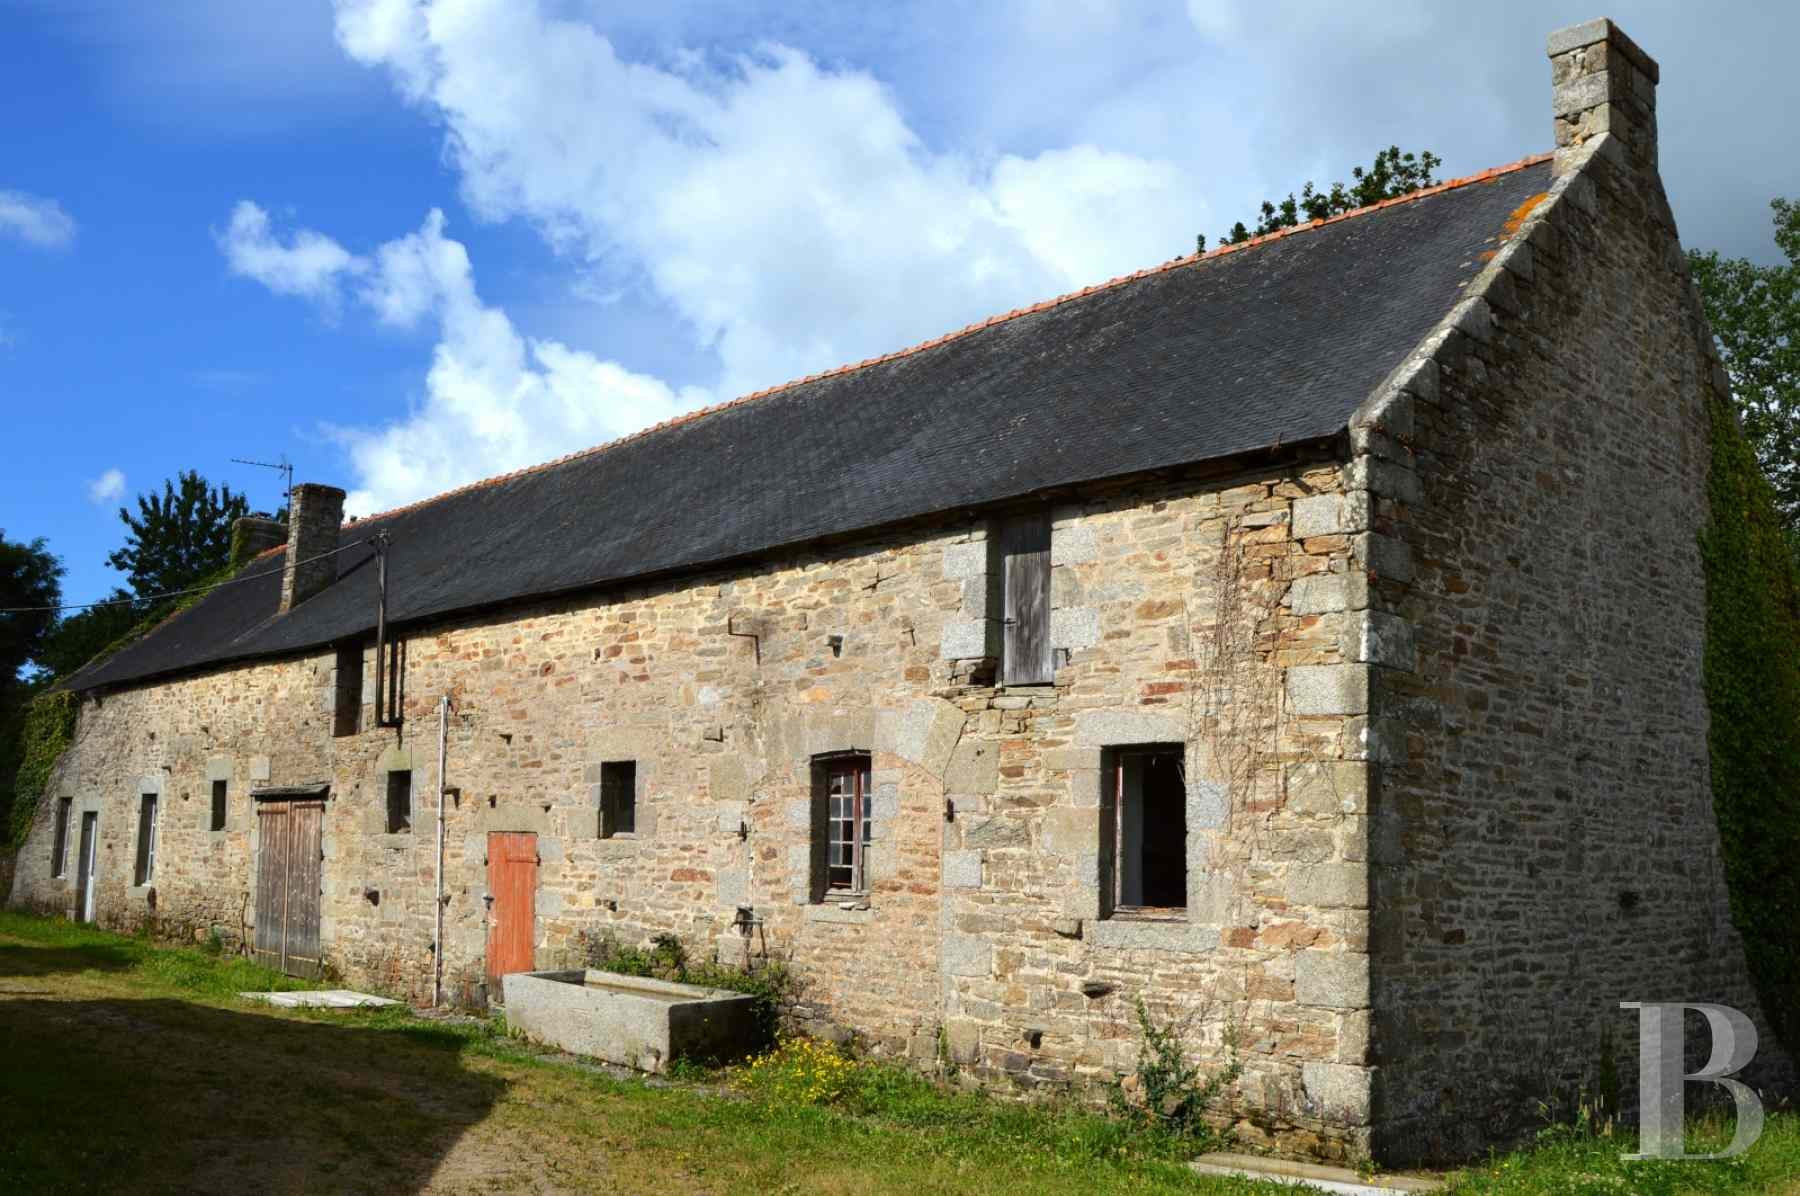 France mansions for sale brittany finistere property - 7 zoom